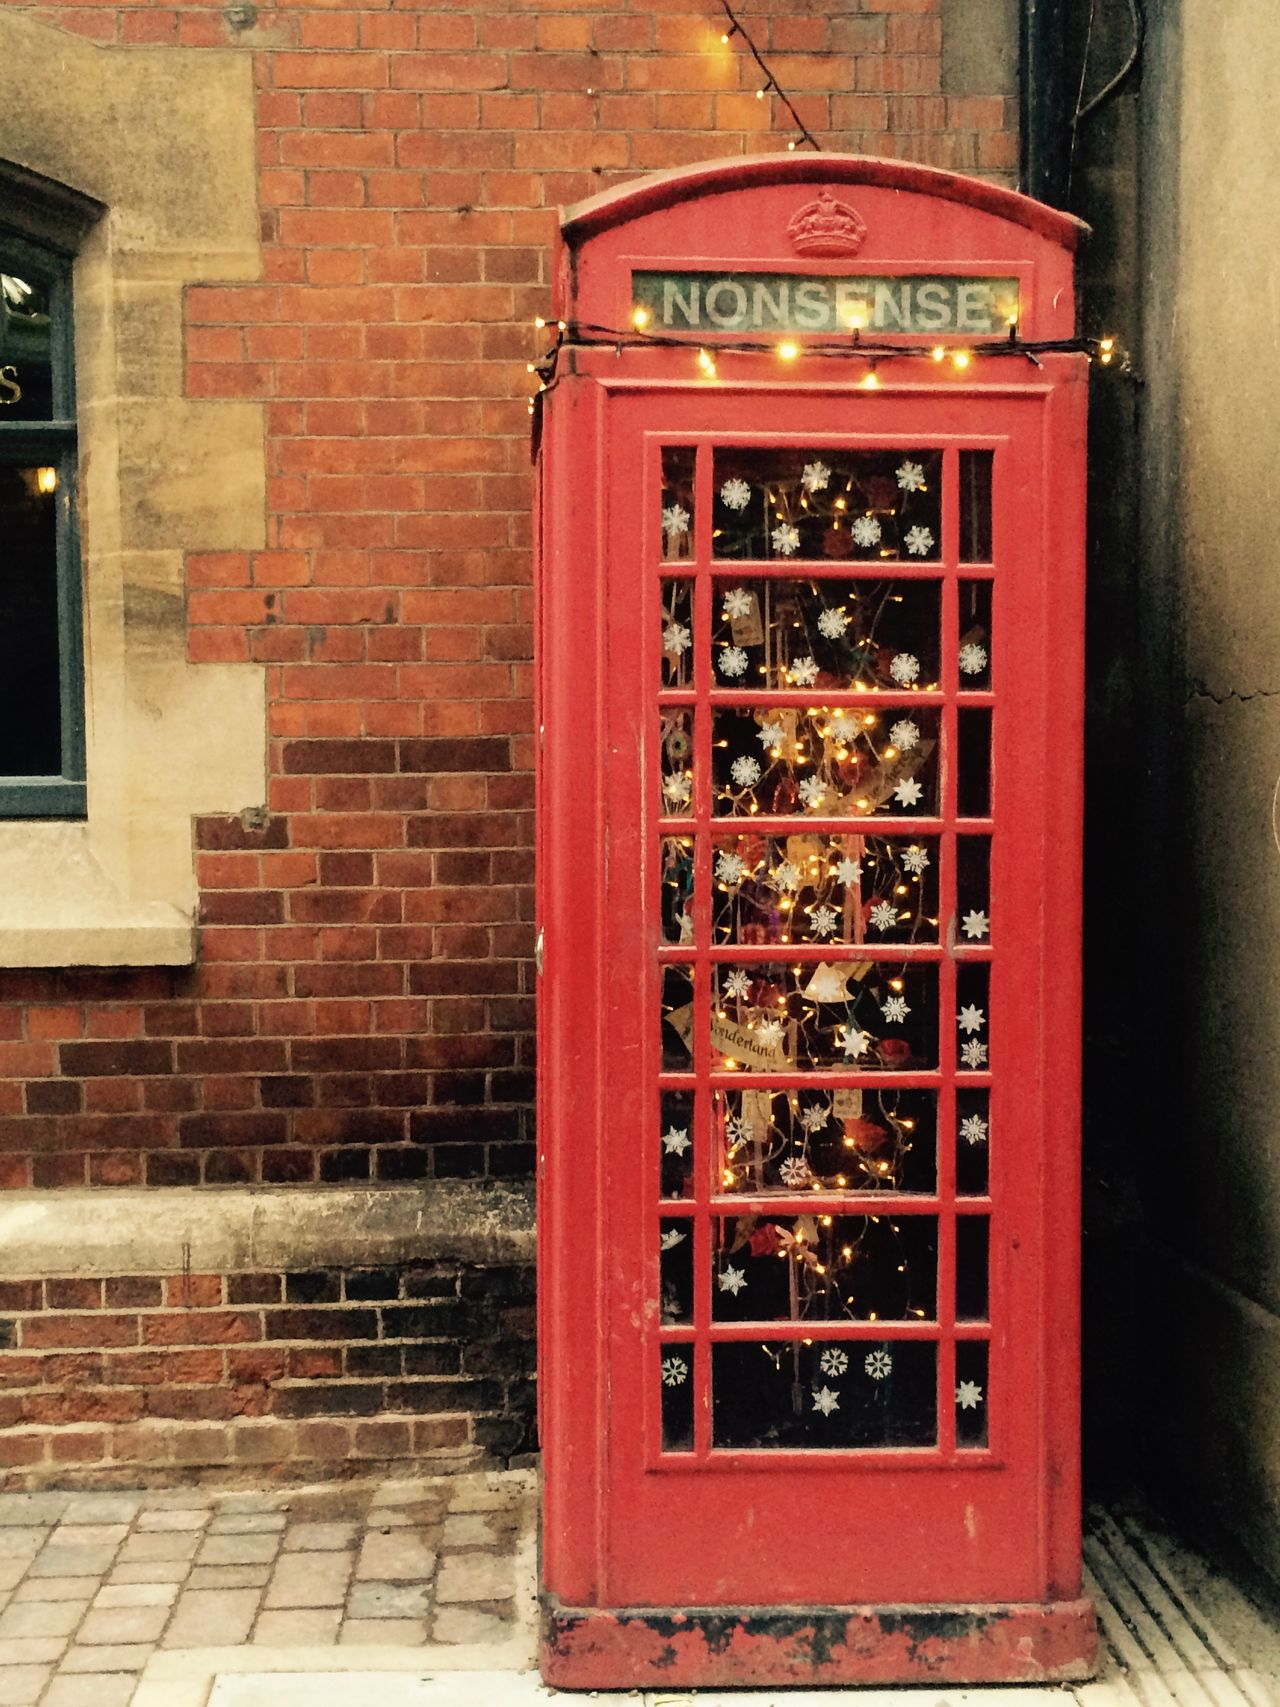 Architecture Brick Wall England London No People Nolstalgia Old Oxford Phone Box Red Red Phone Boxes